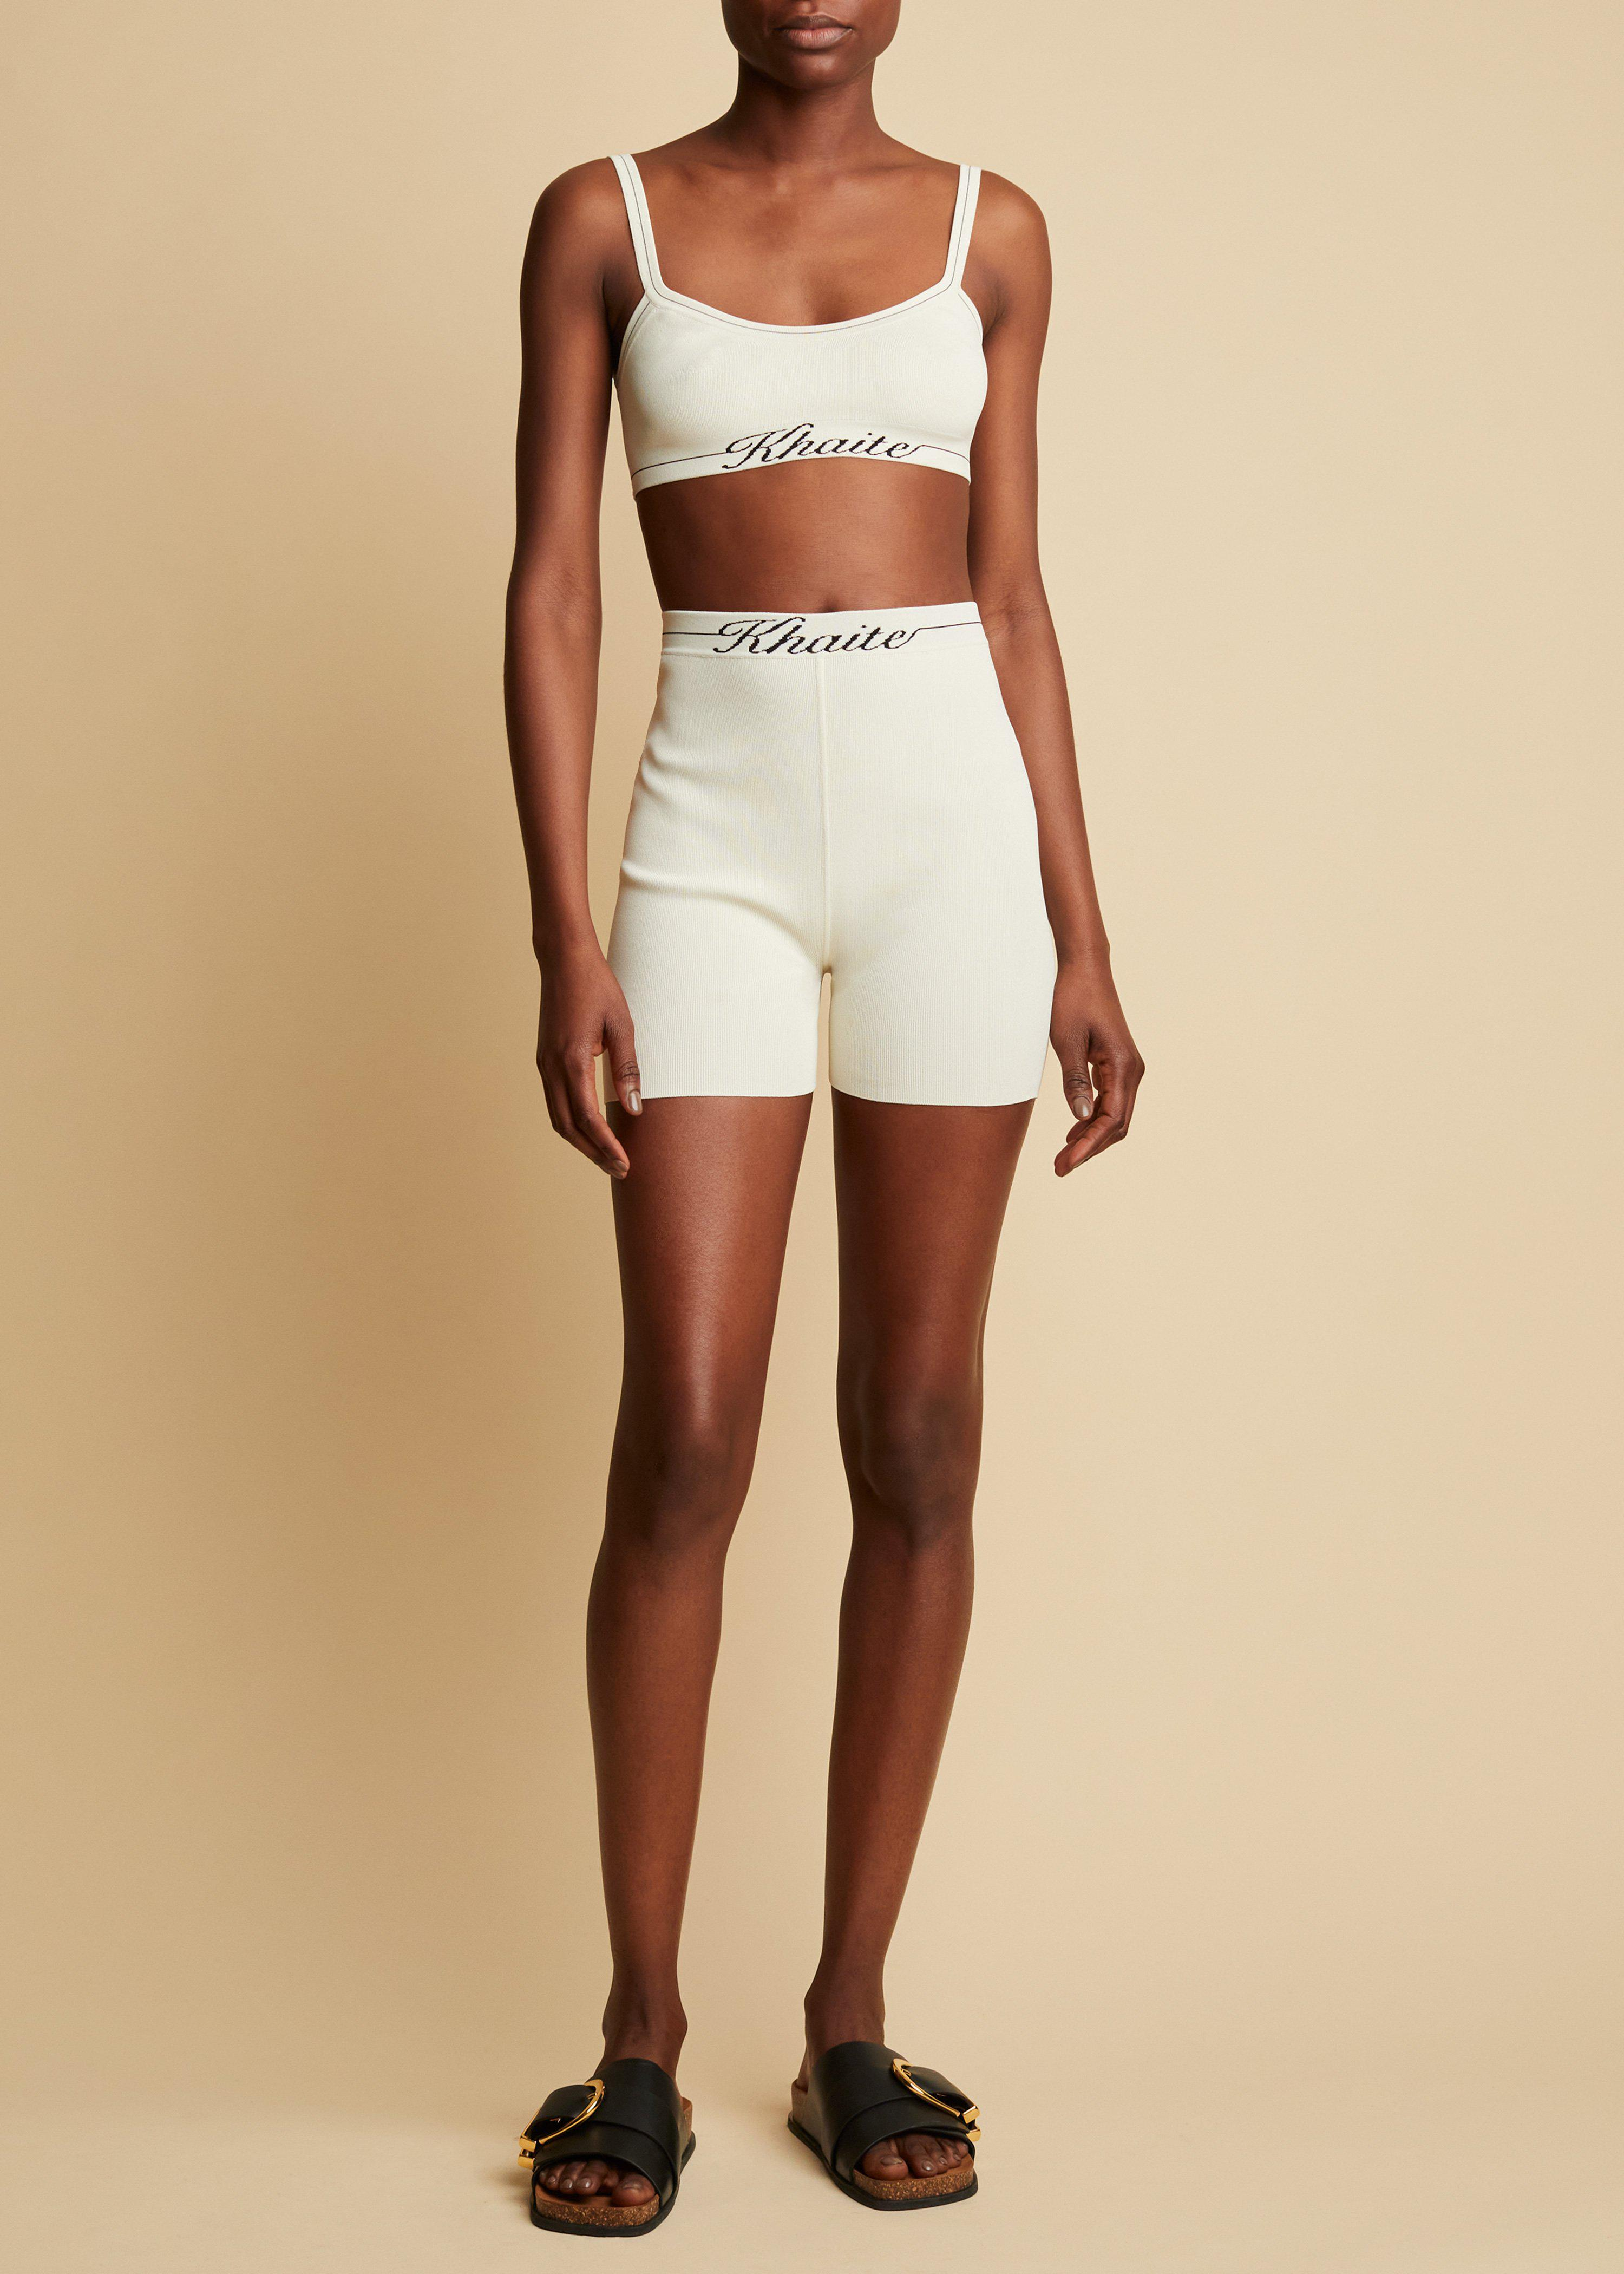 The Bryant Short in Ivory